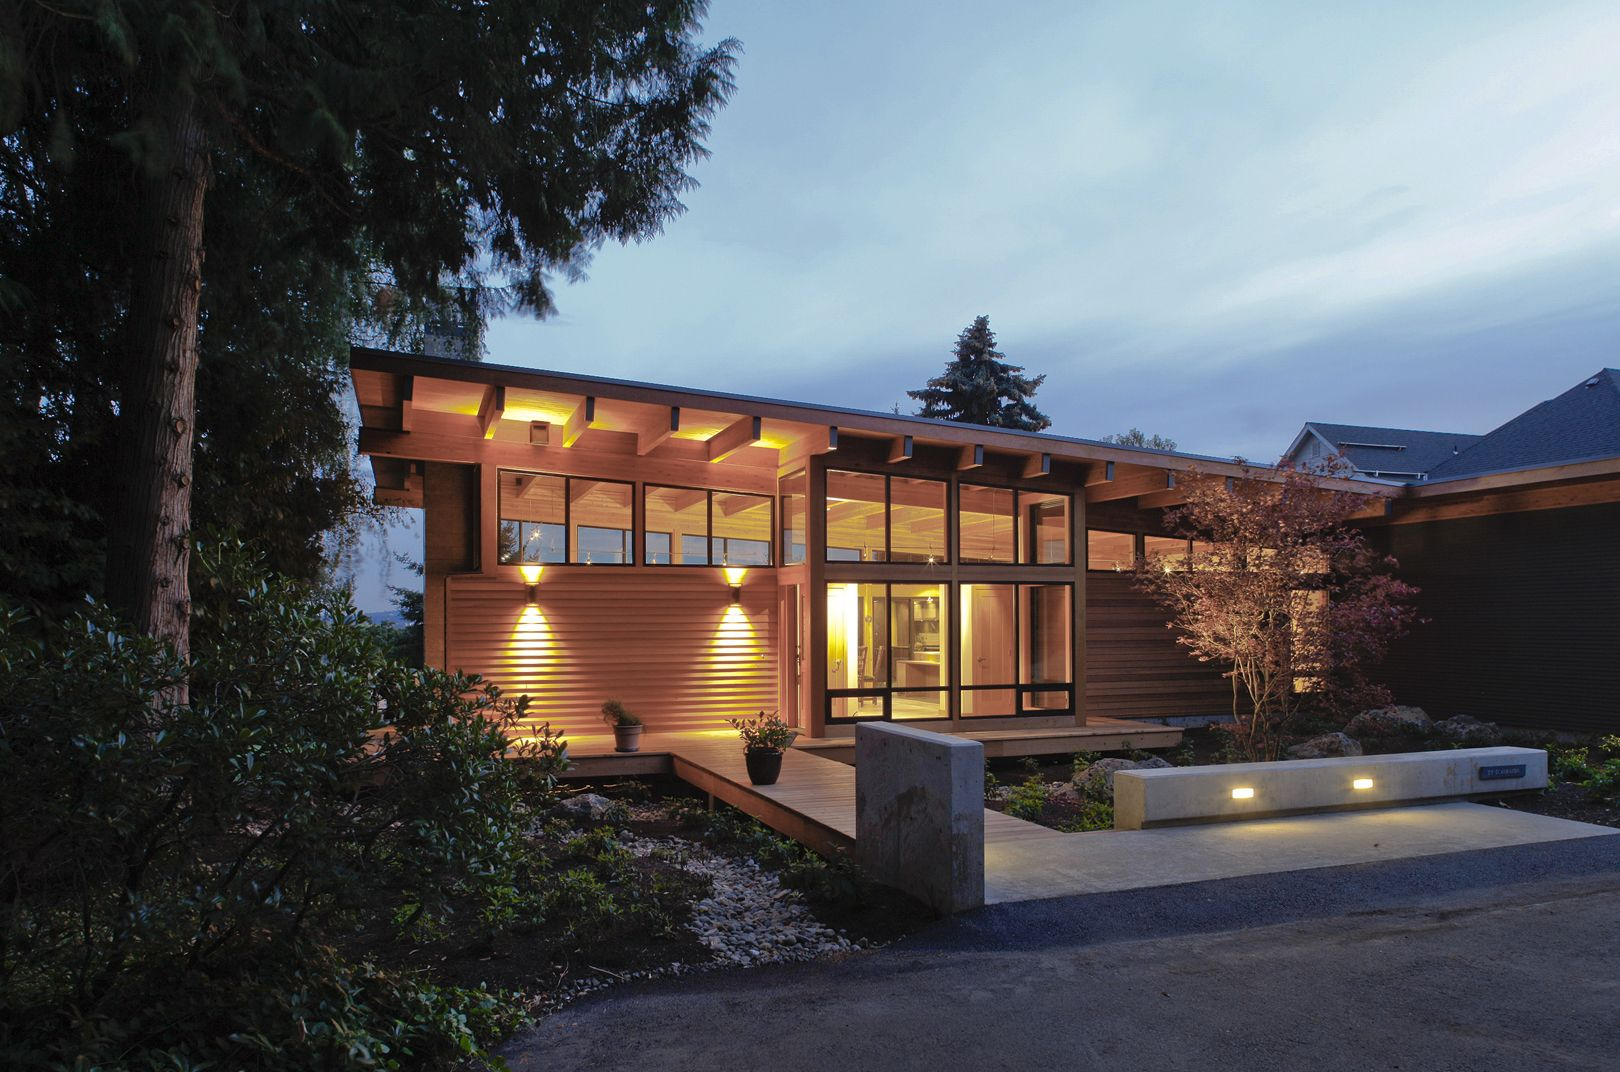 Vancouver airport home pacific northwest modern home for Northwest contemporary homes